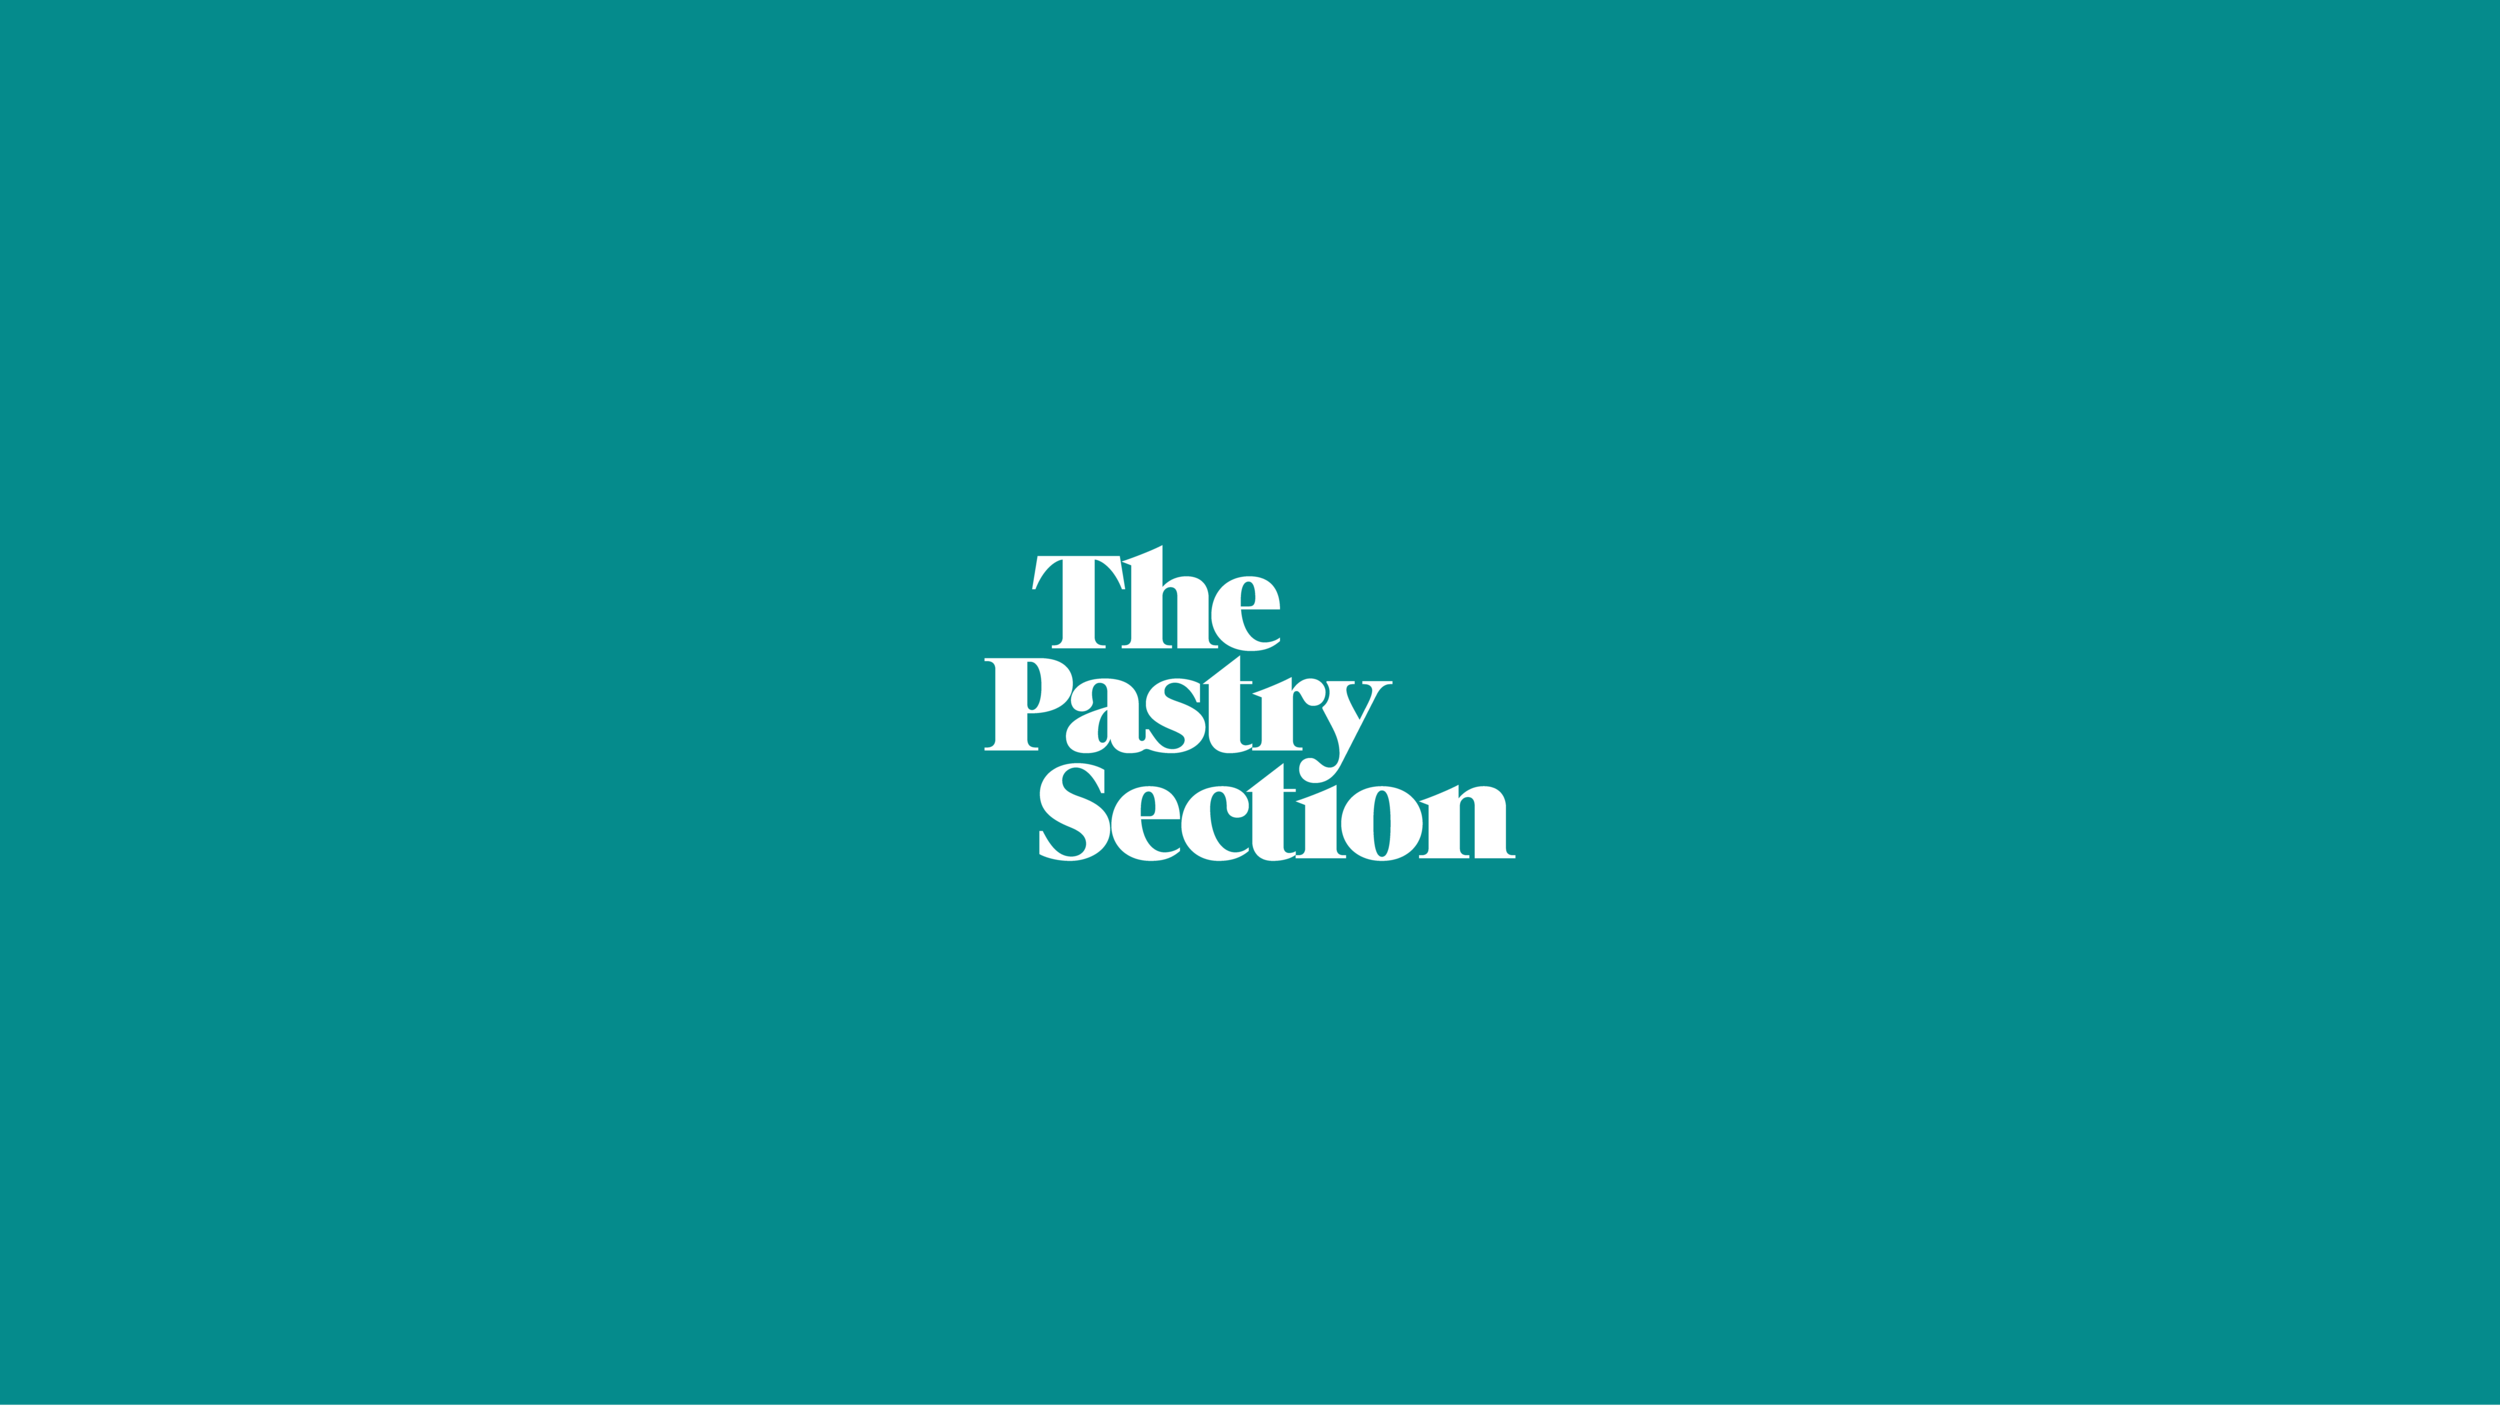 pastrylogo-01.png